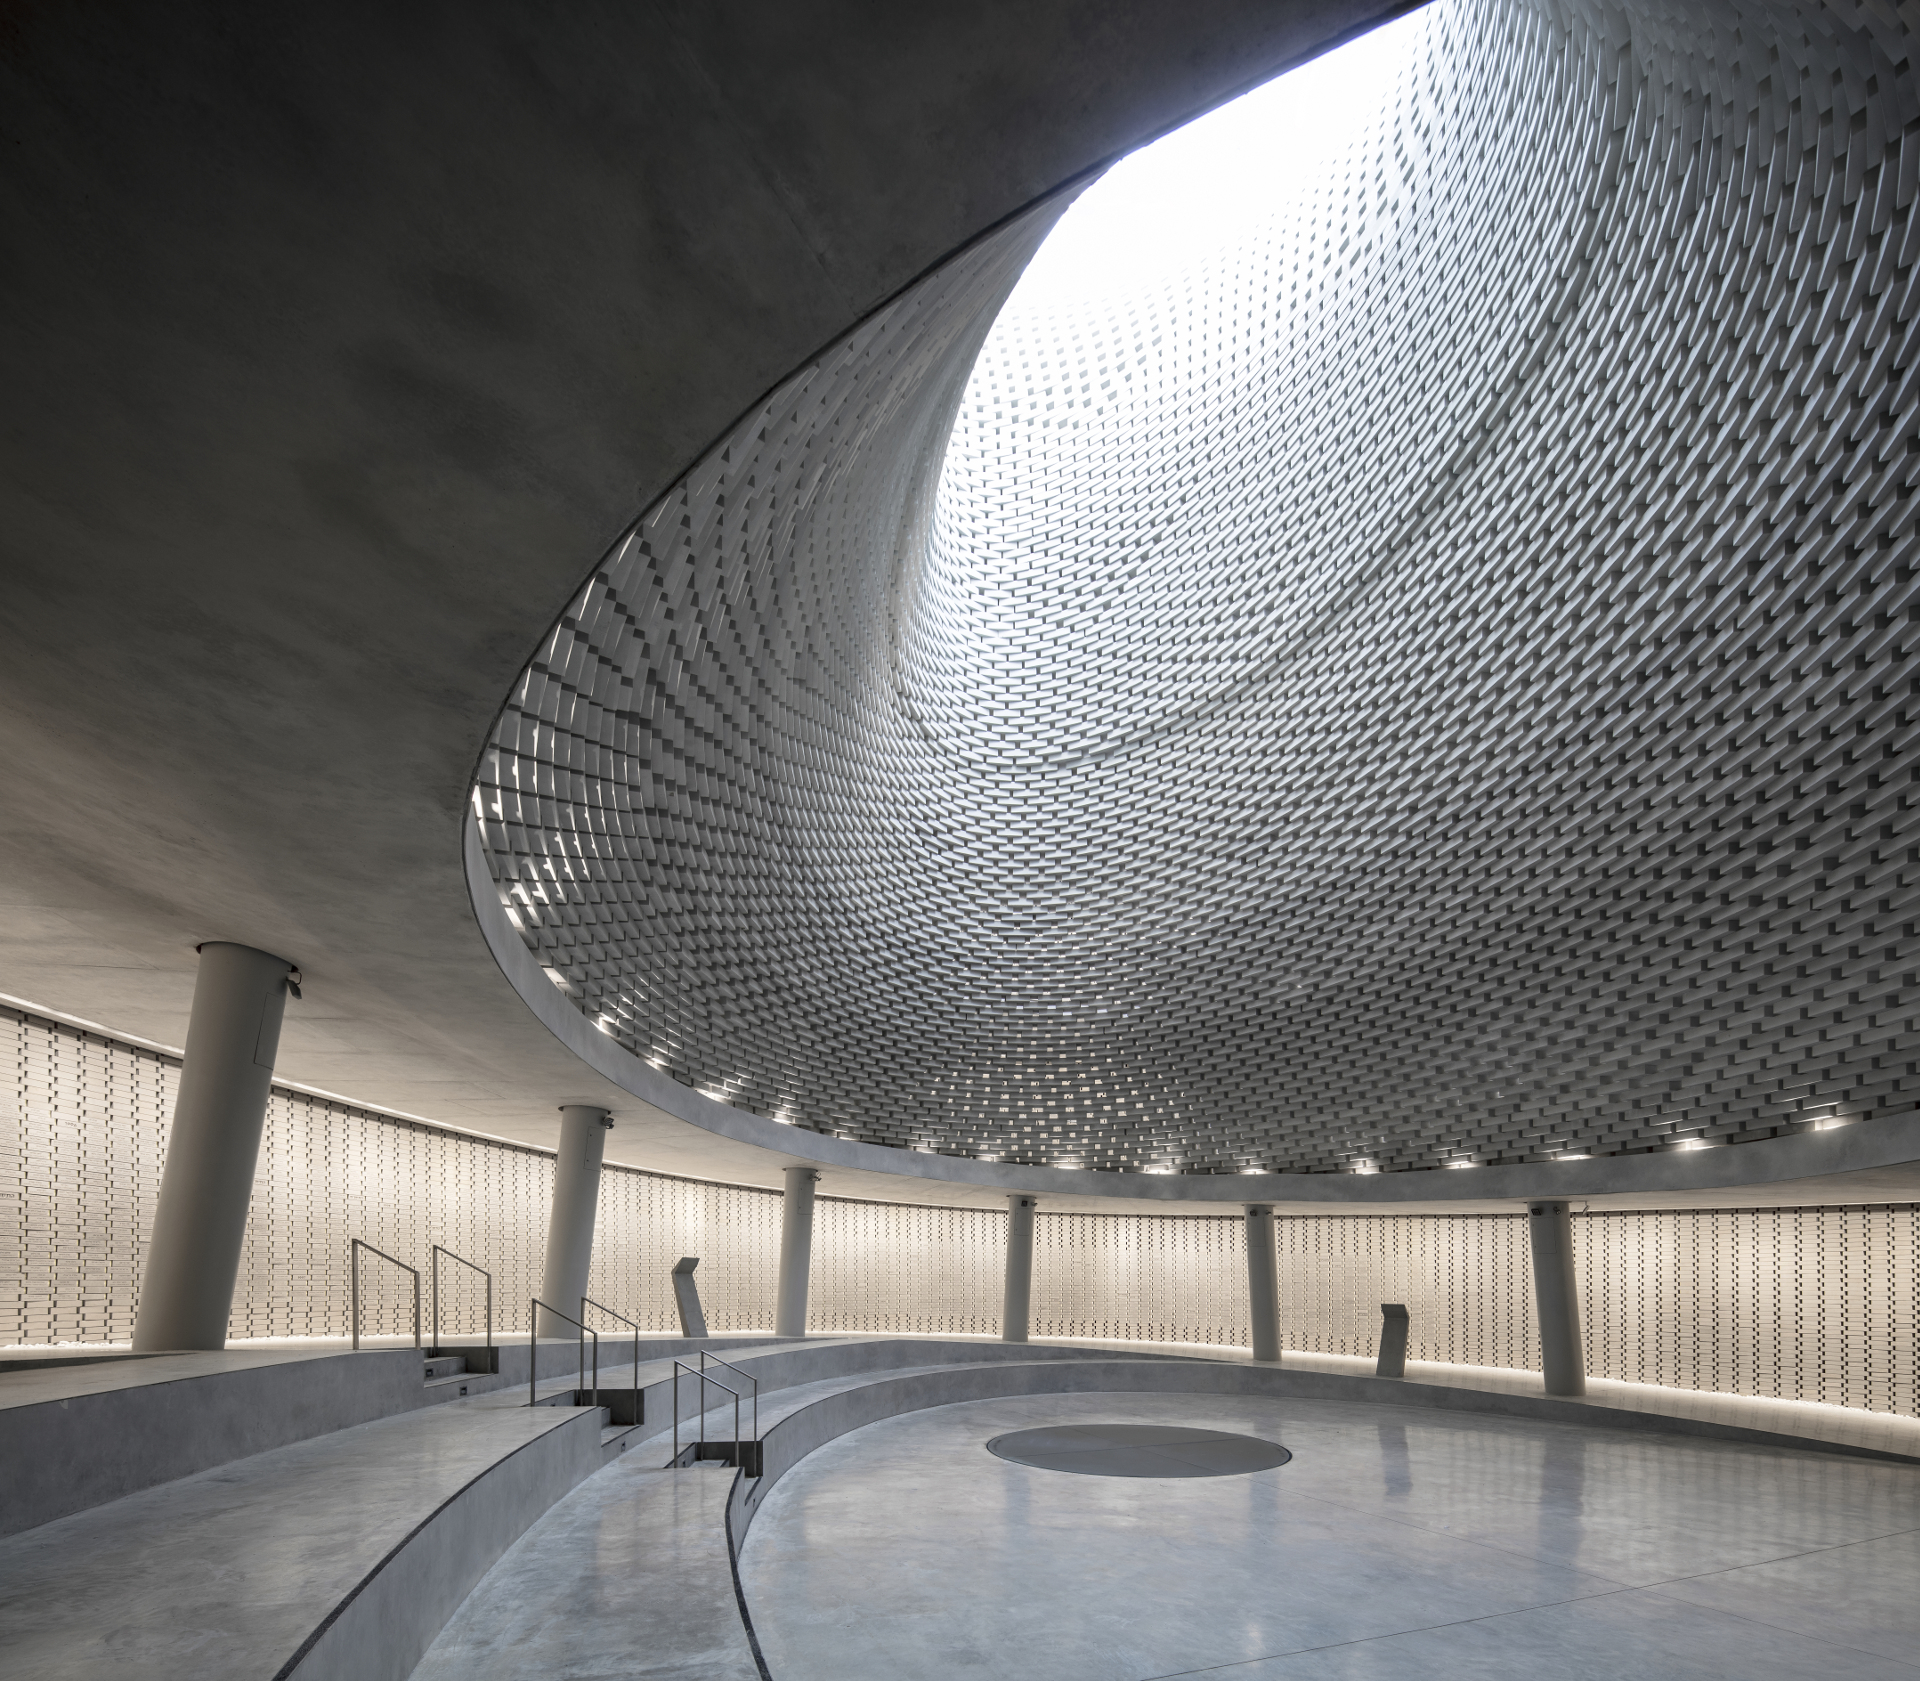 Il Mount Herzl Memorial Hall in mattoni di alluminio di Kimmel Eshkolot Architects